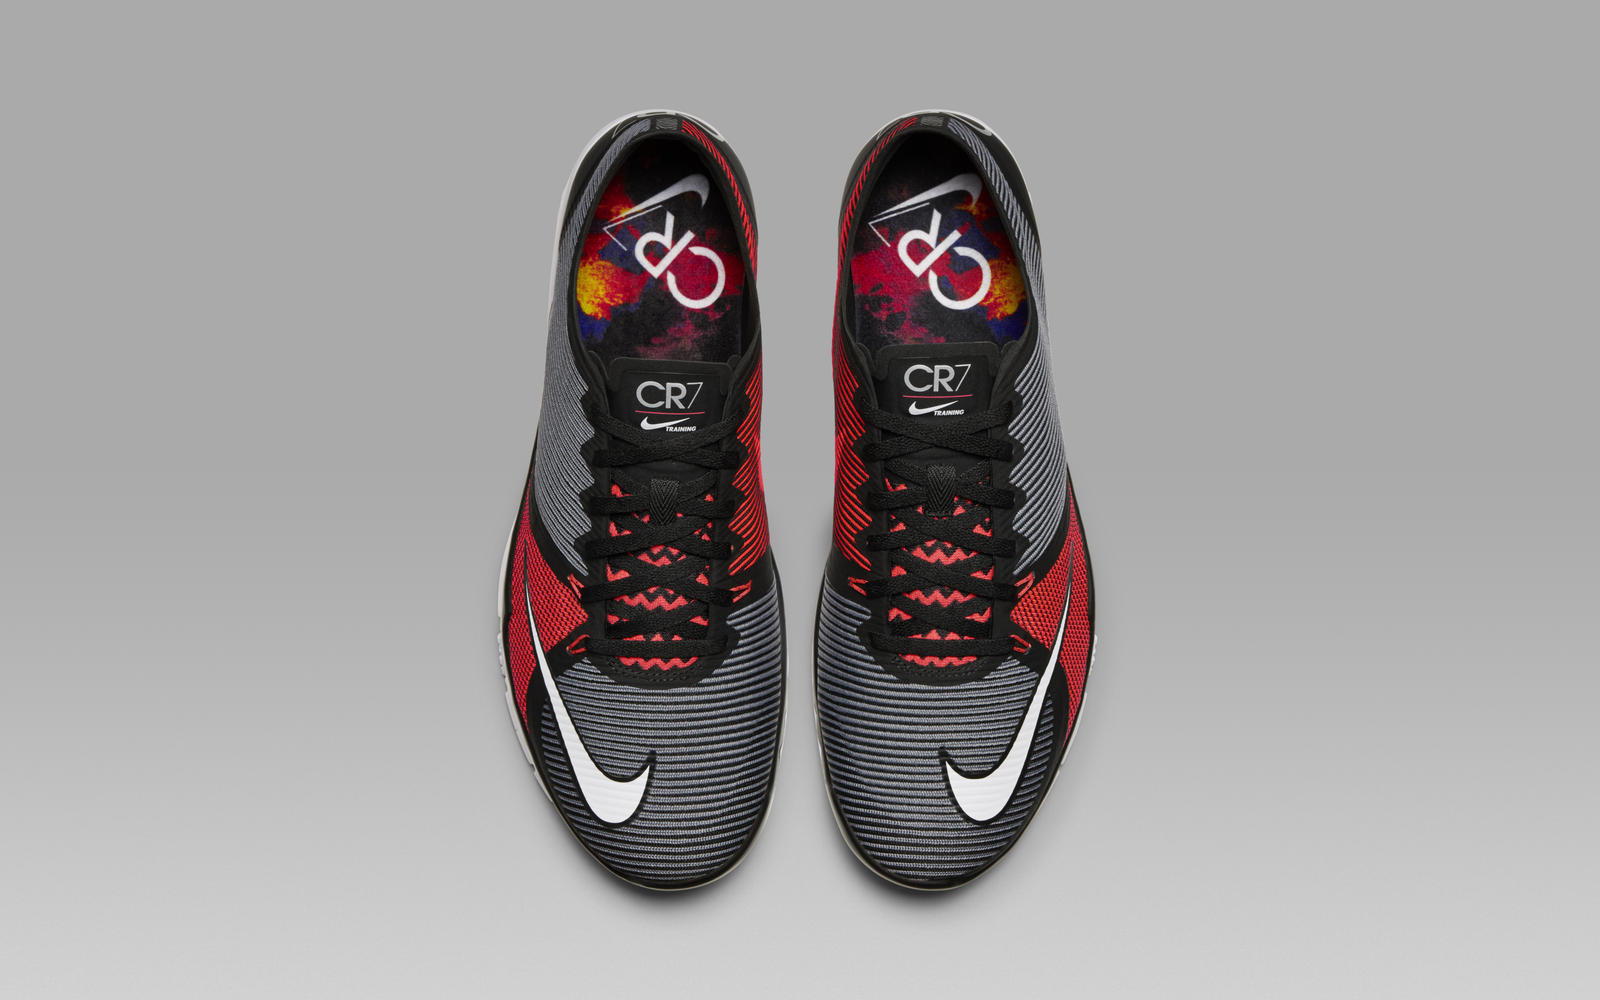 f32cdf64391be Nike Free Trainer 3.0 CR7 Reveals Cristiano Ronaldo s Powerful Roots ...